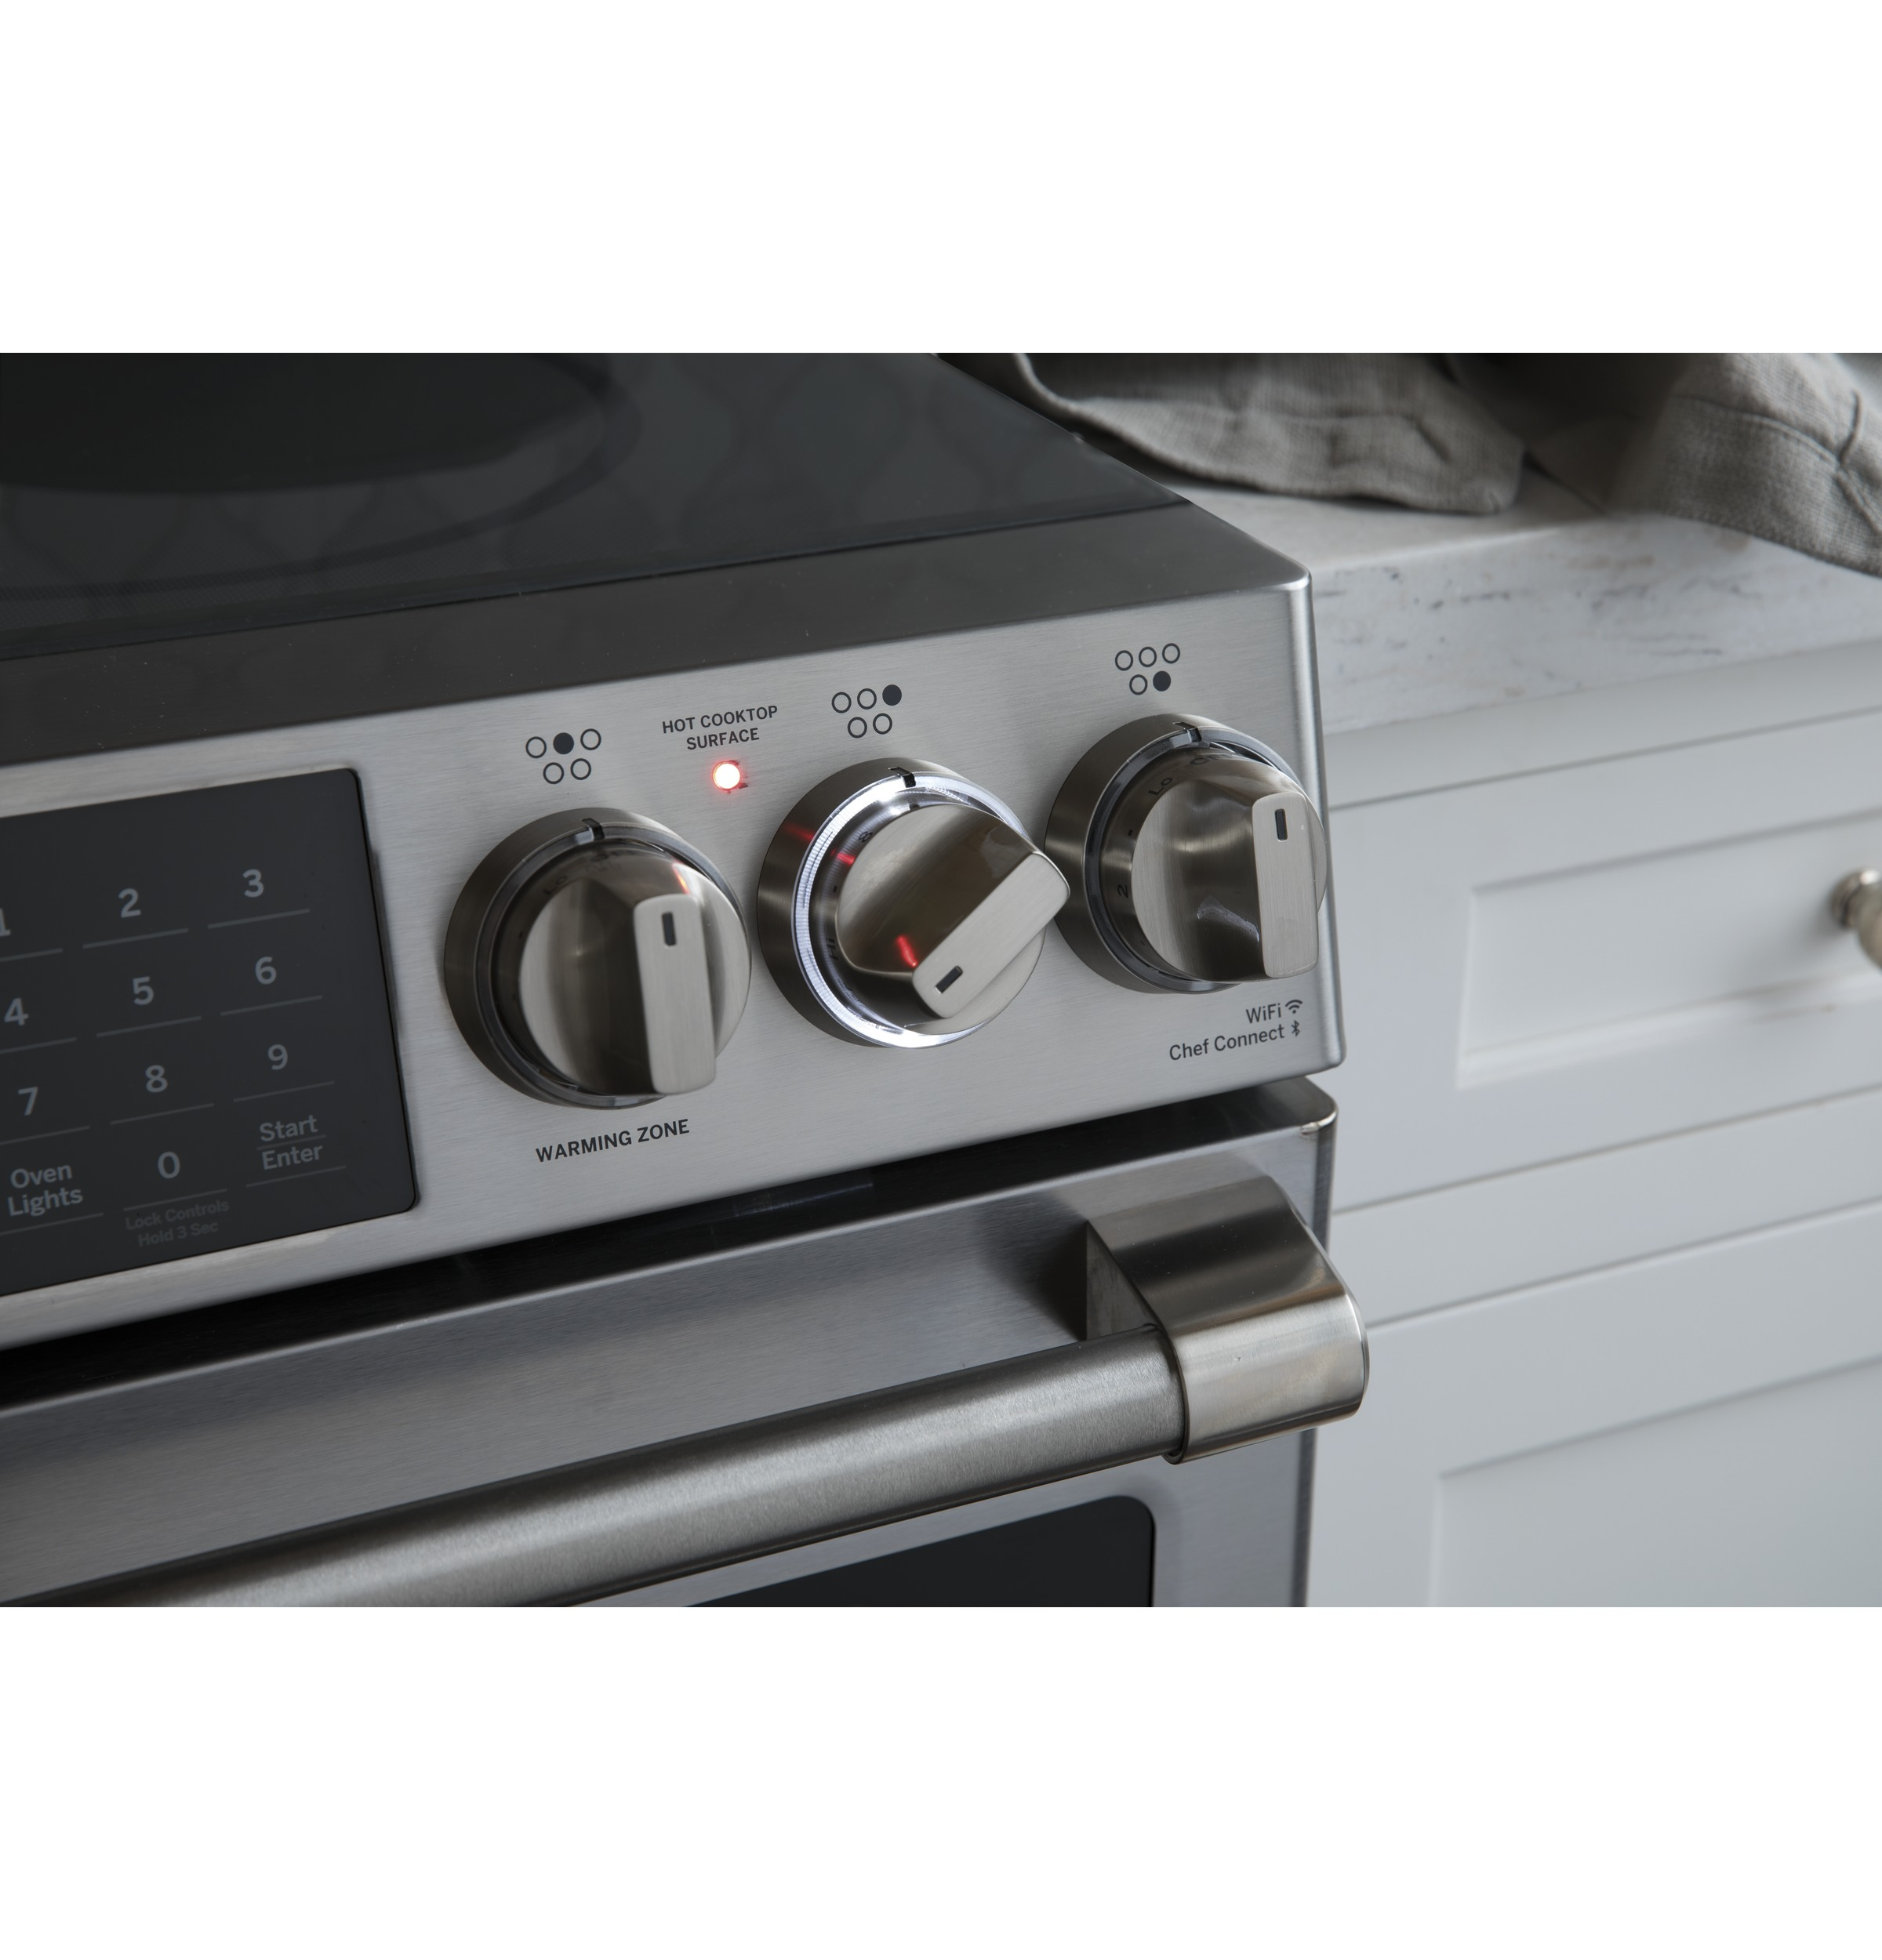 Ge Cafe Series 30 Slide In Front Control Induction And Convection Warm Zone Wiring Diagrams 1 Of 18